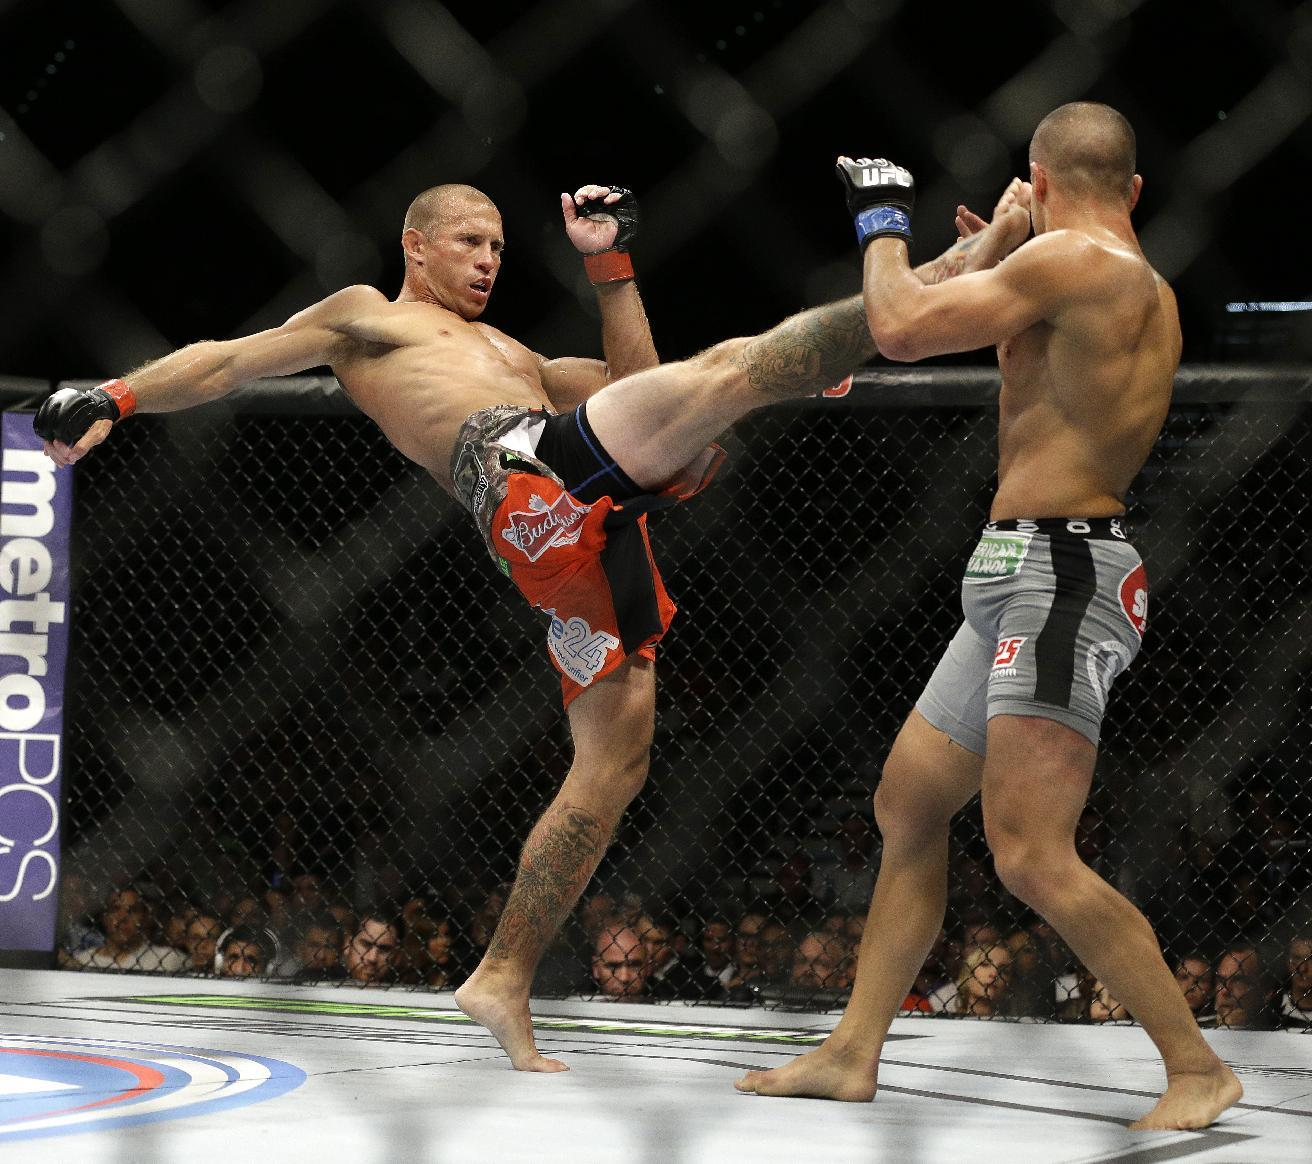 Donald Cerrone steals show, closes in on title shot with win over Eddie Alvarez